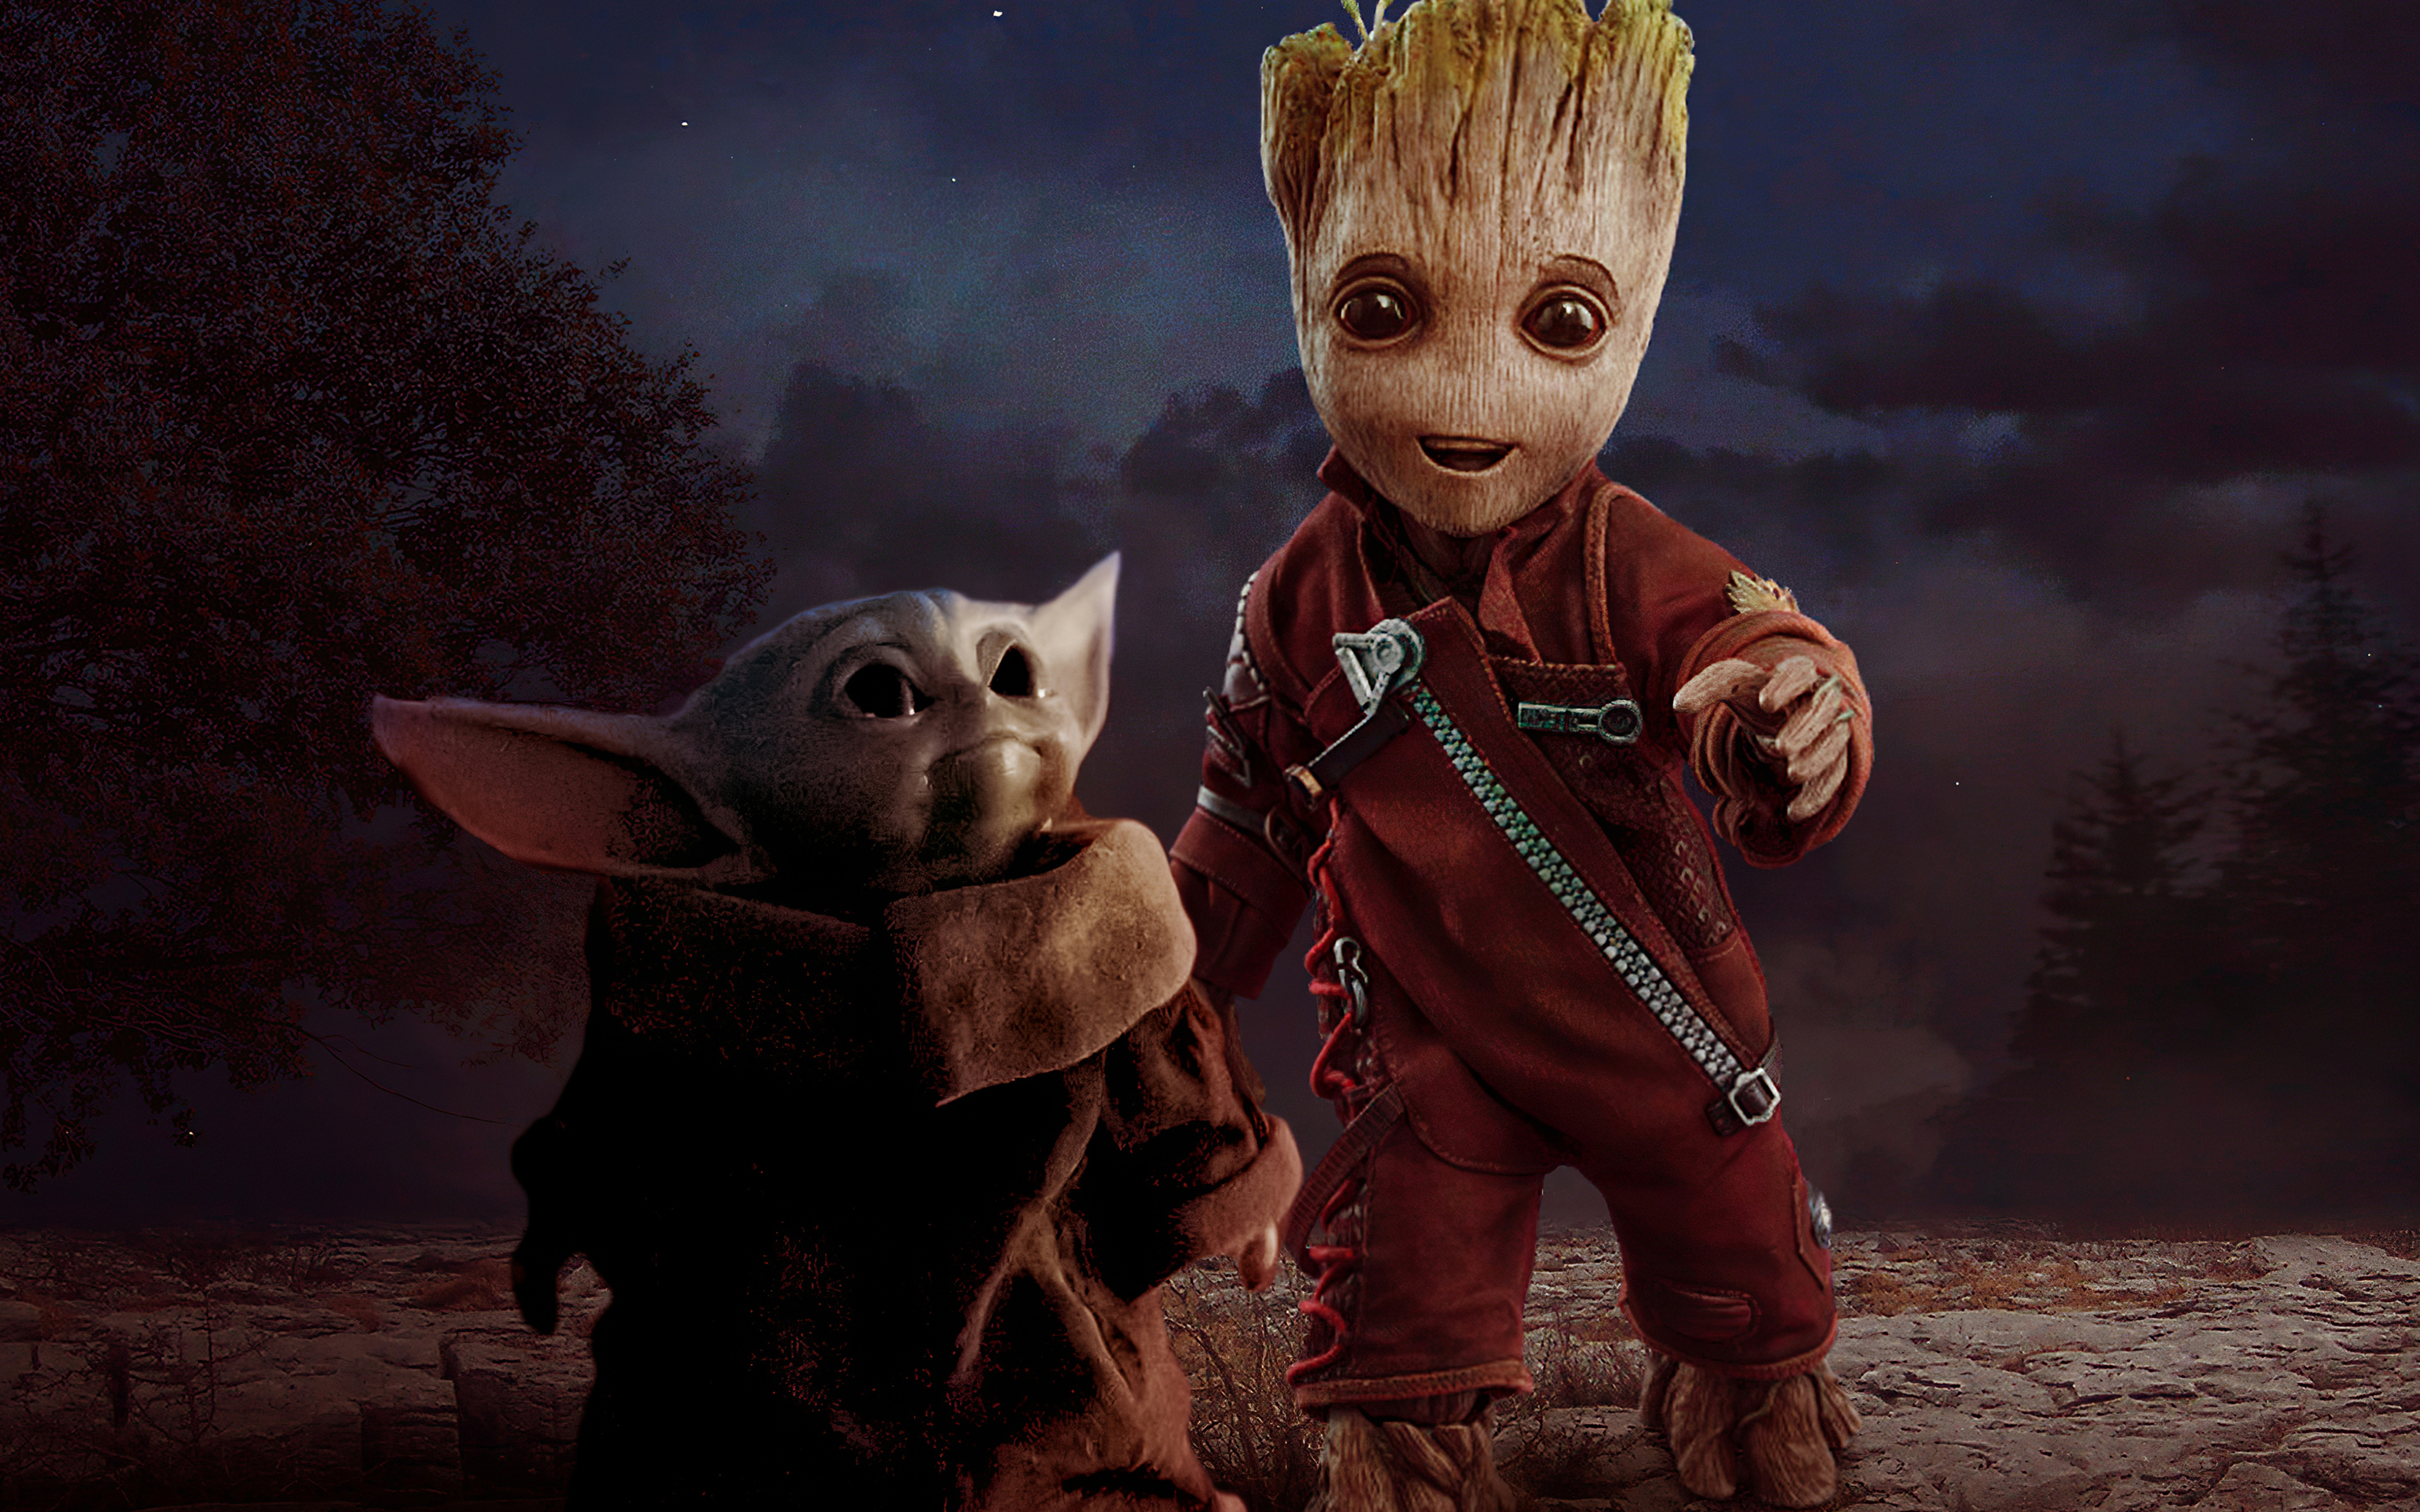 2880x1800 Baby Yoda And Baby Groot Macbook Pro Retina HD ...